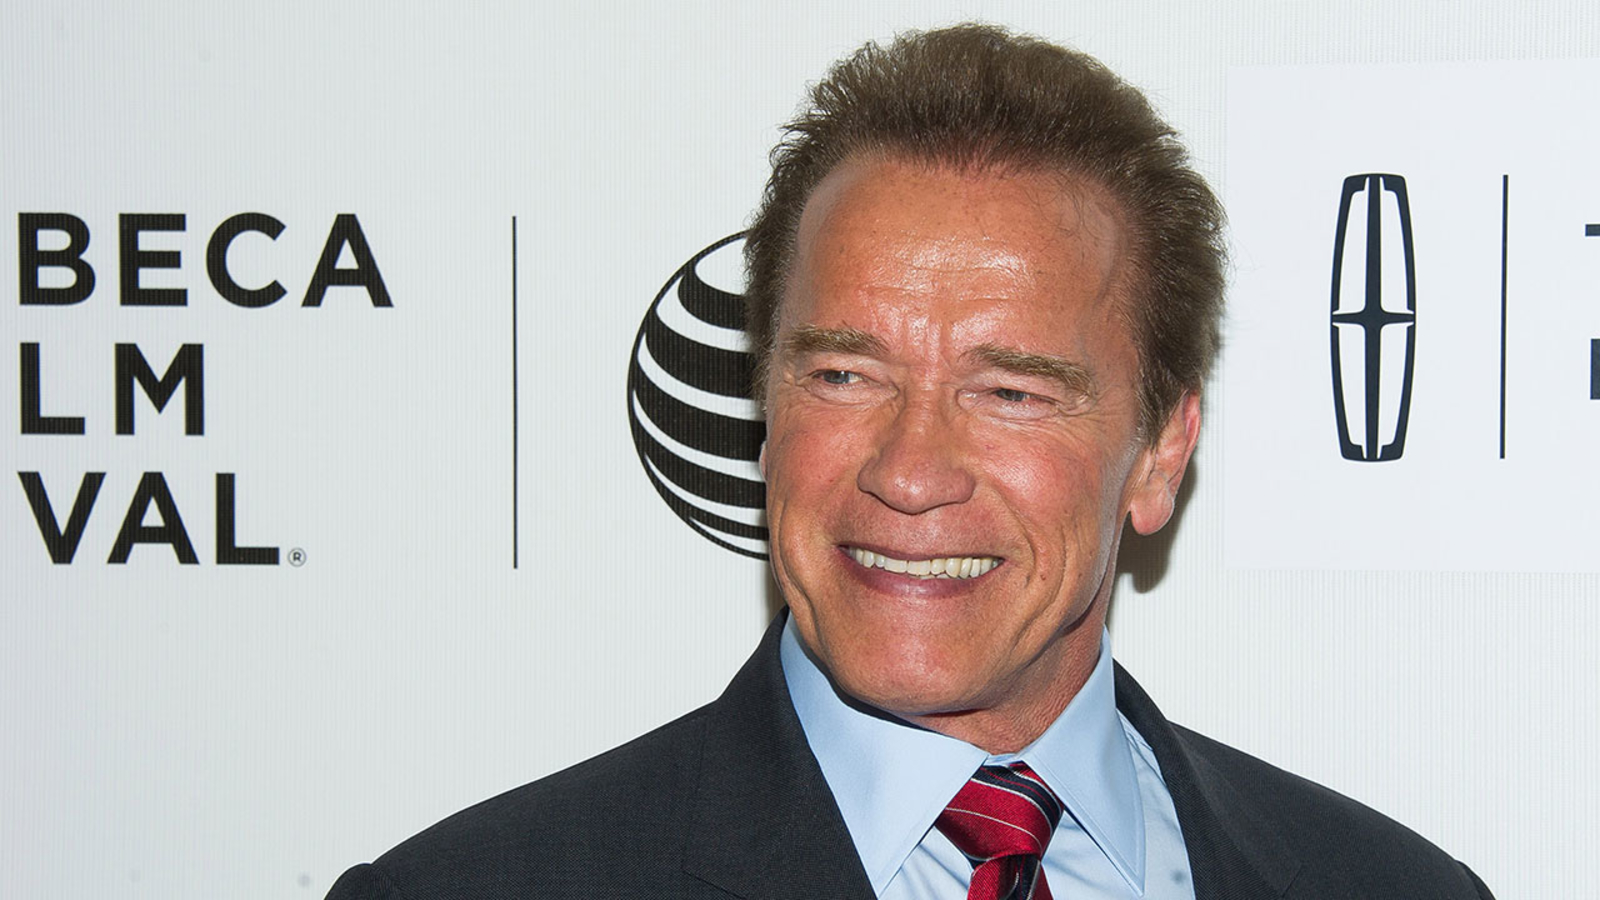 Arnold Schwarzenegger assaulted with flying kick during fitness event in South Africa